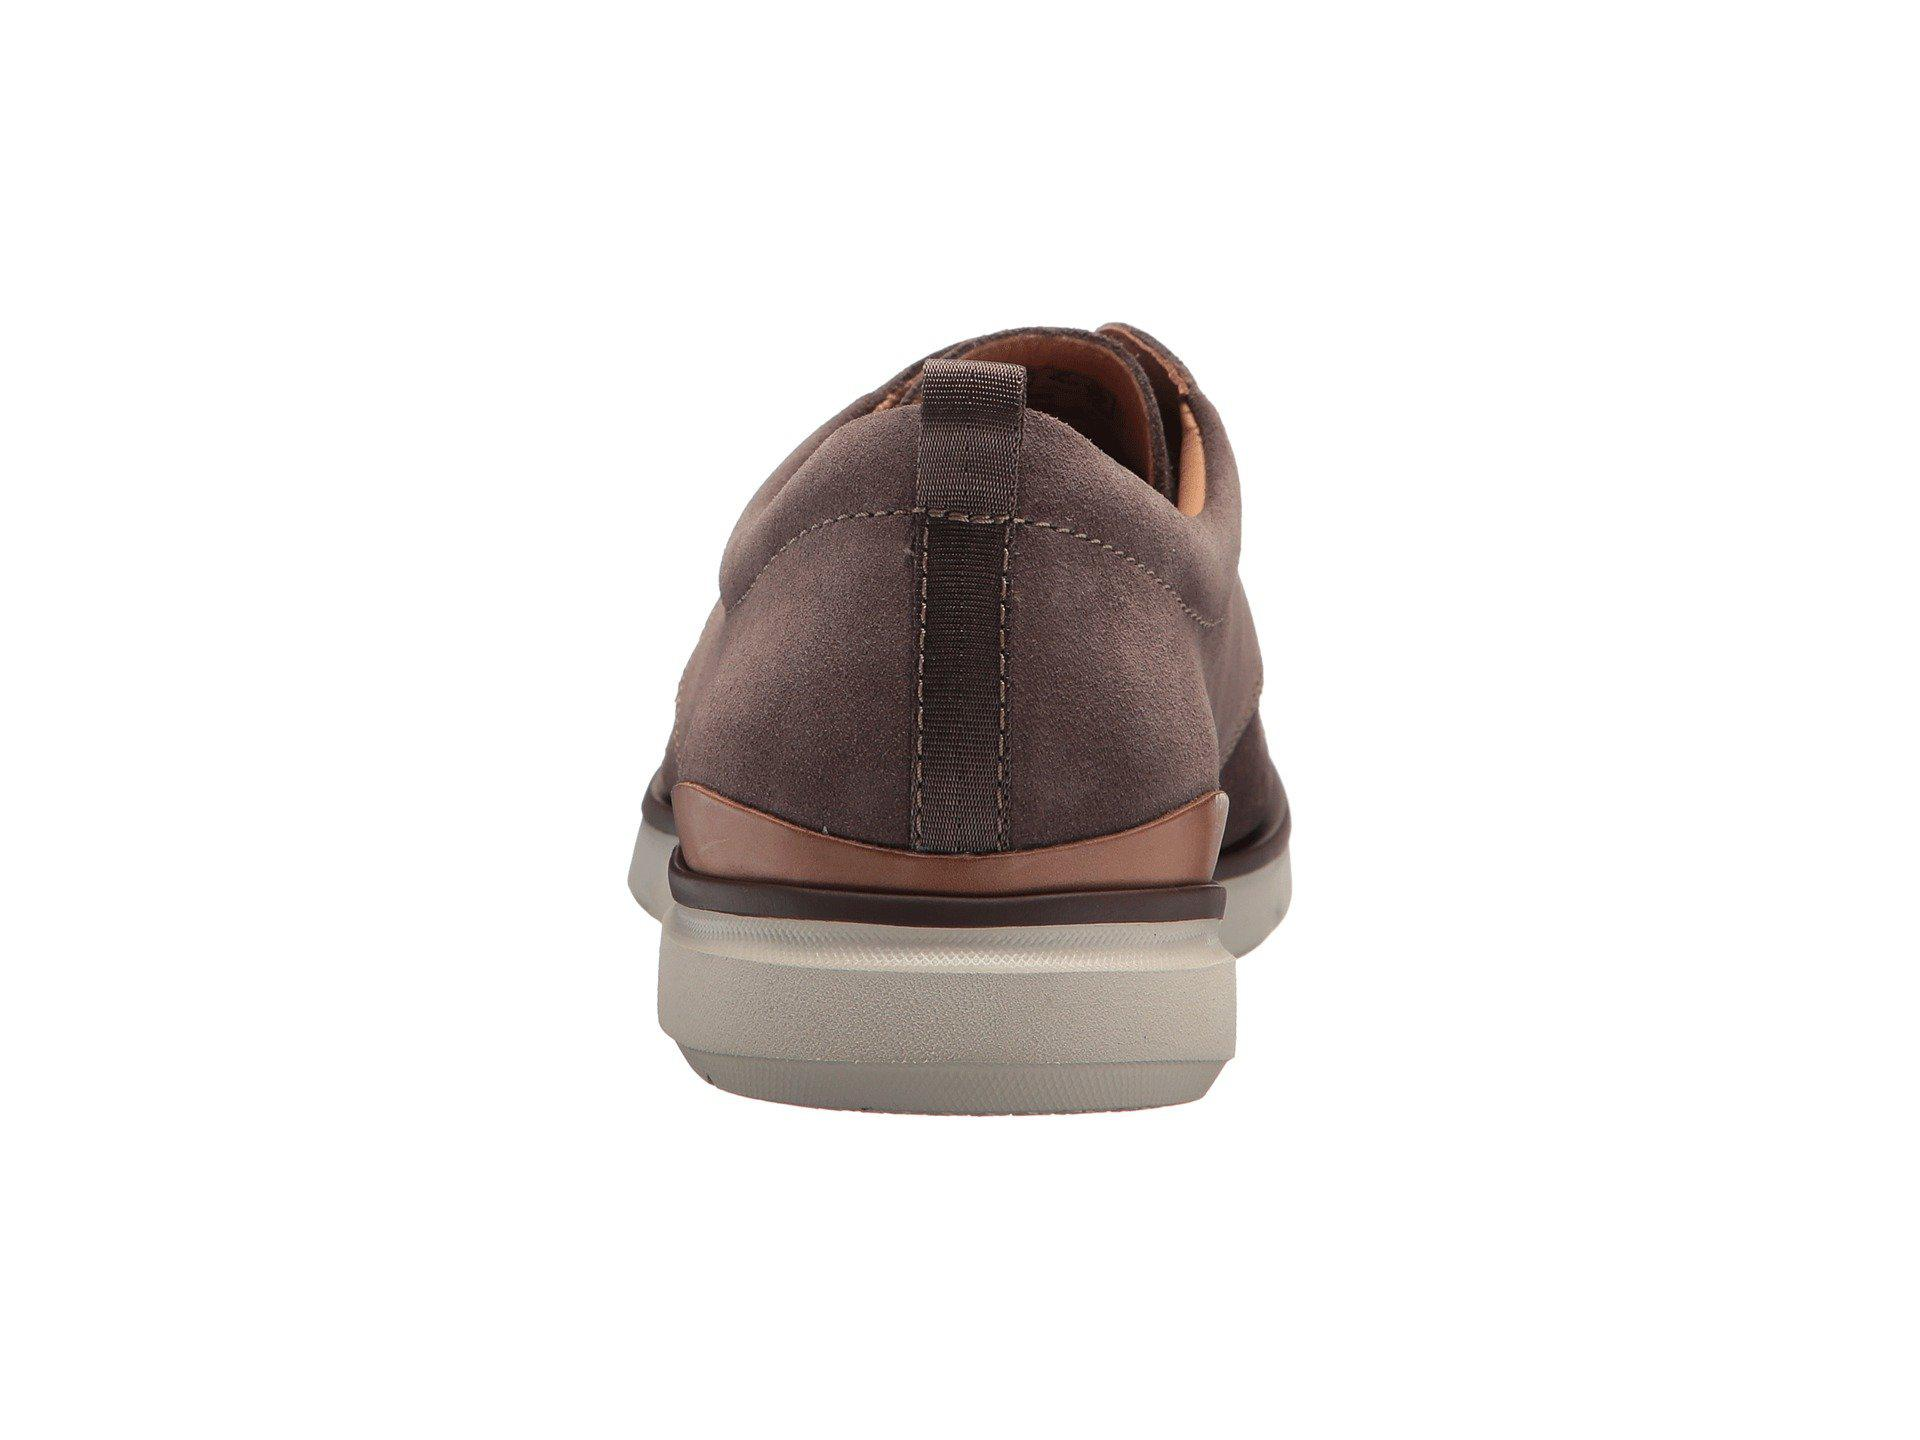 pompa pescado Articulación  Clarks Leather Edgewood Mix in Taupe Suede (Brown) for Men - Lyst